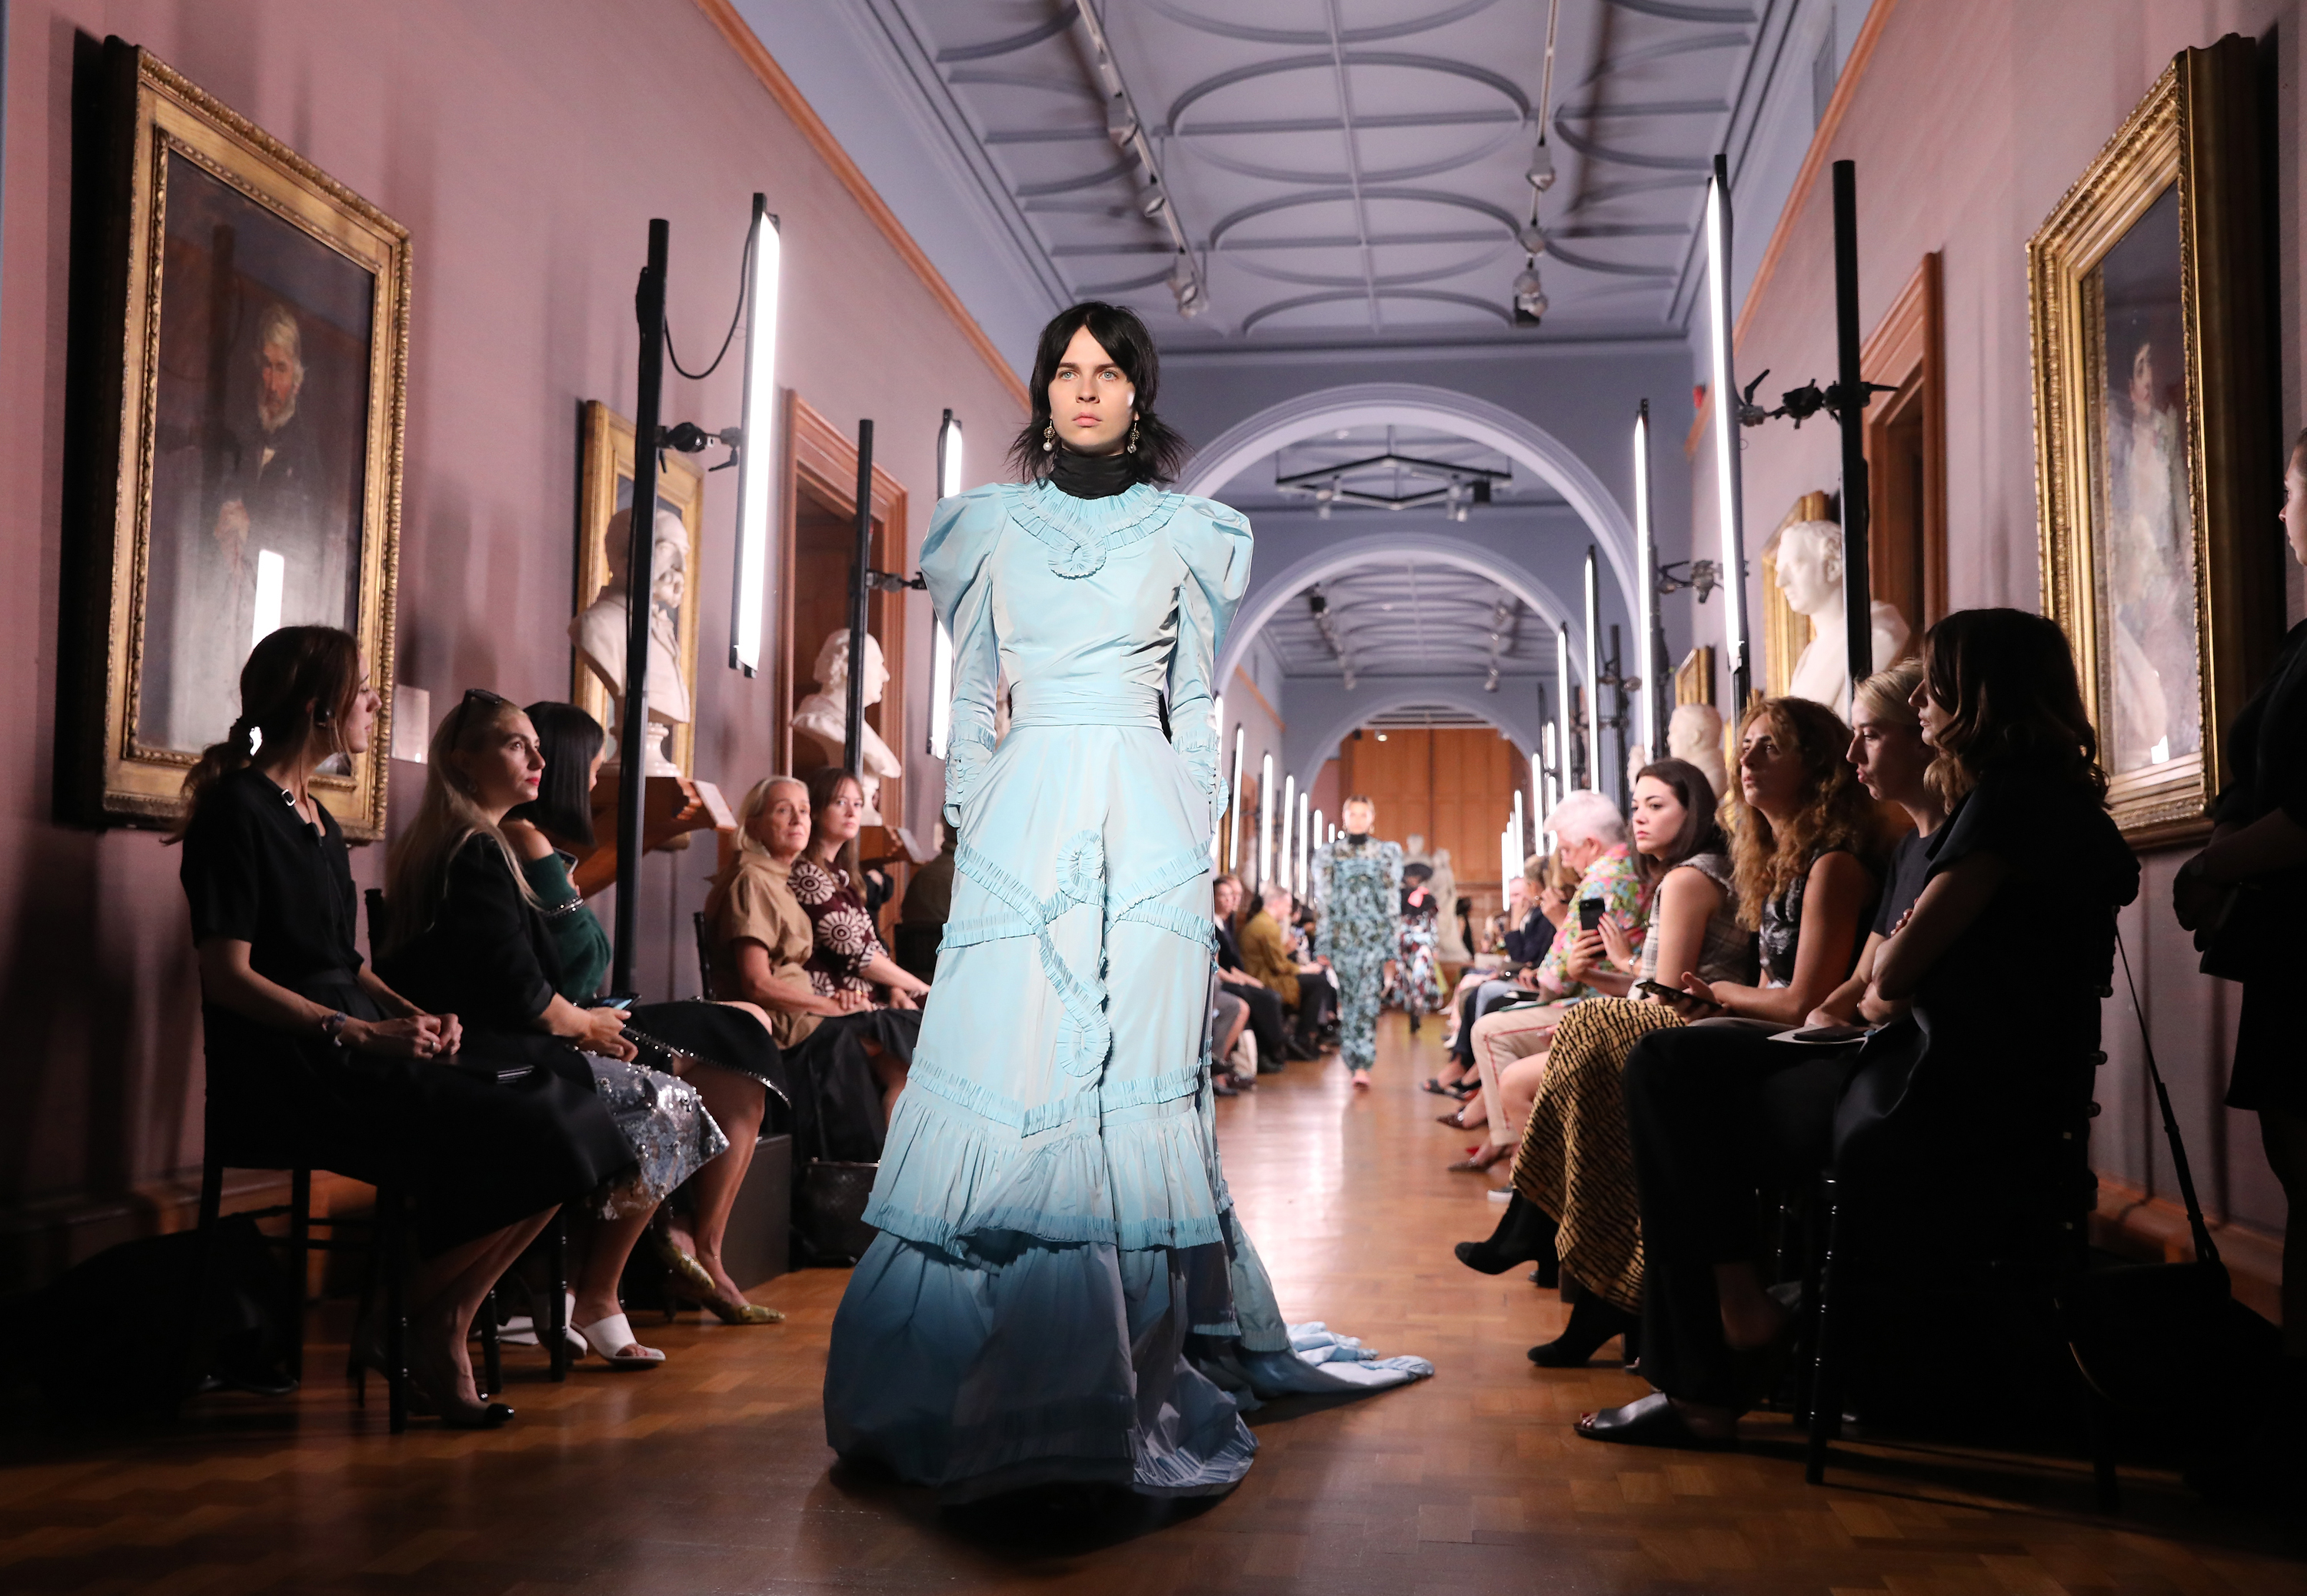 Models on the catwalk during the Erdem London Fashion Week September 2018 show at The National Portrait Gallery in London.